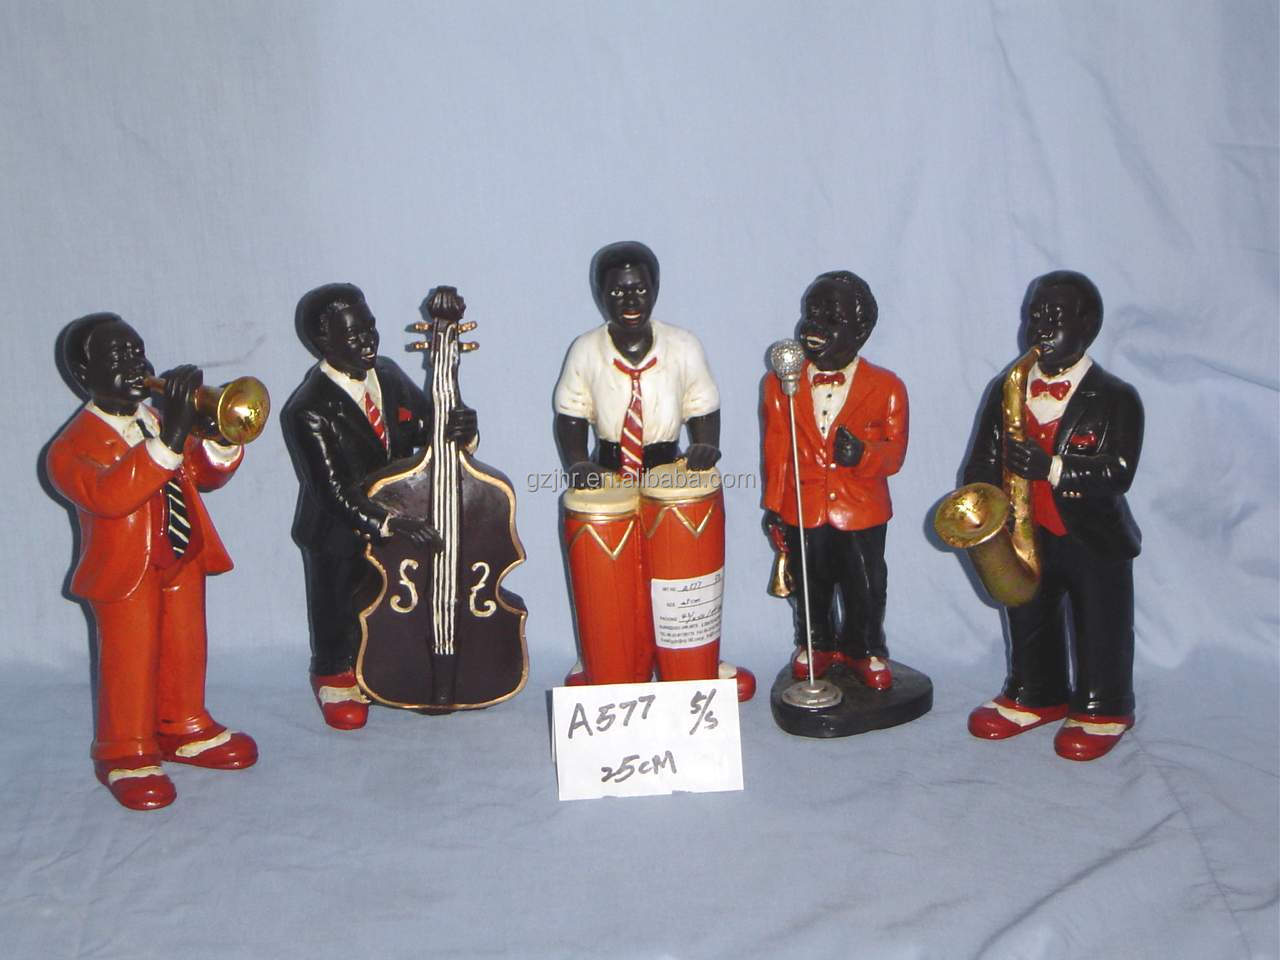 Resin Black People African Band Figurine For Home Decor